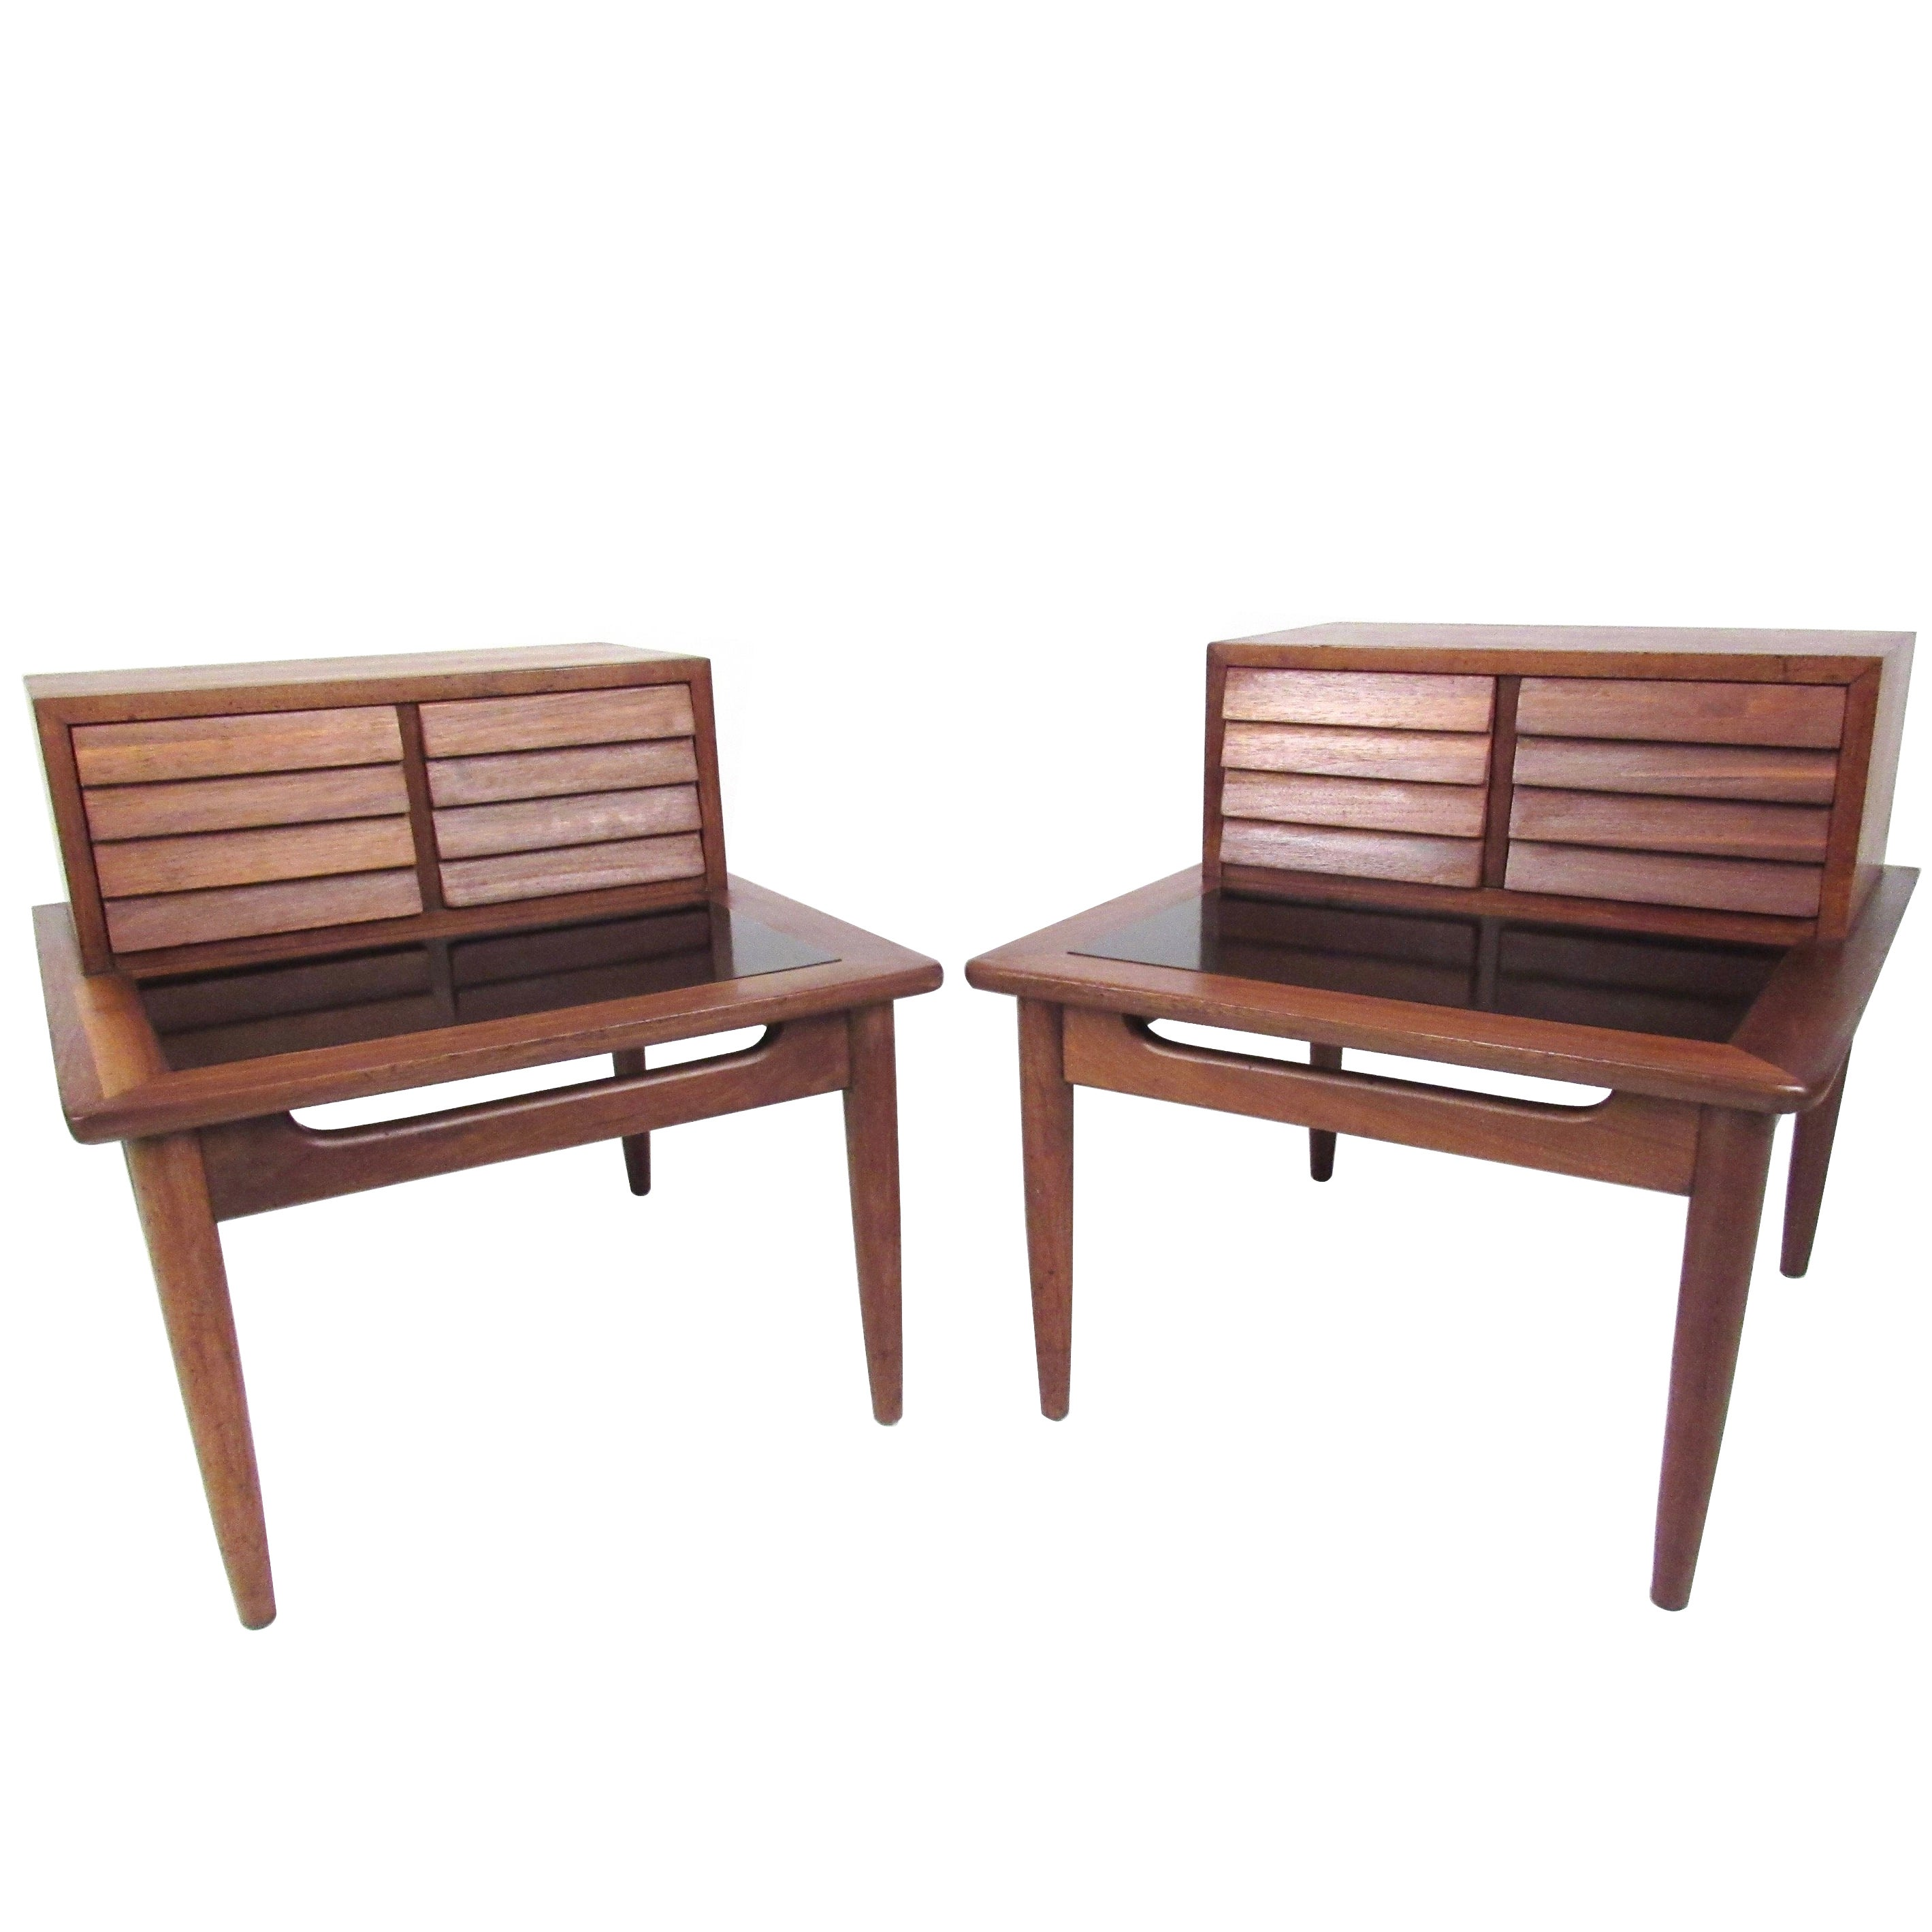 Pair of Midcentury Storage End Tables by American of Martinsville